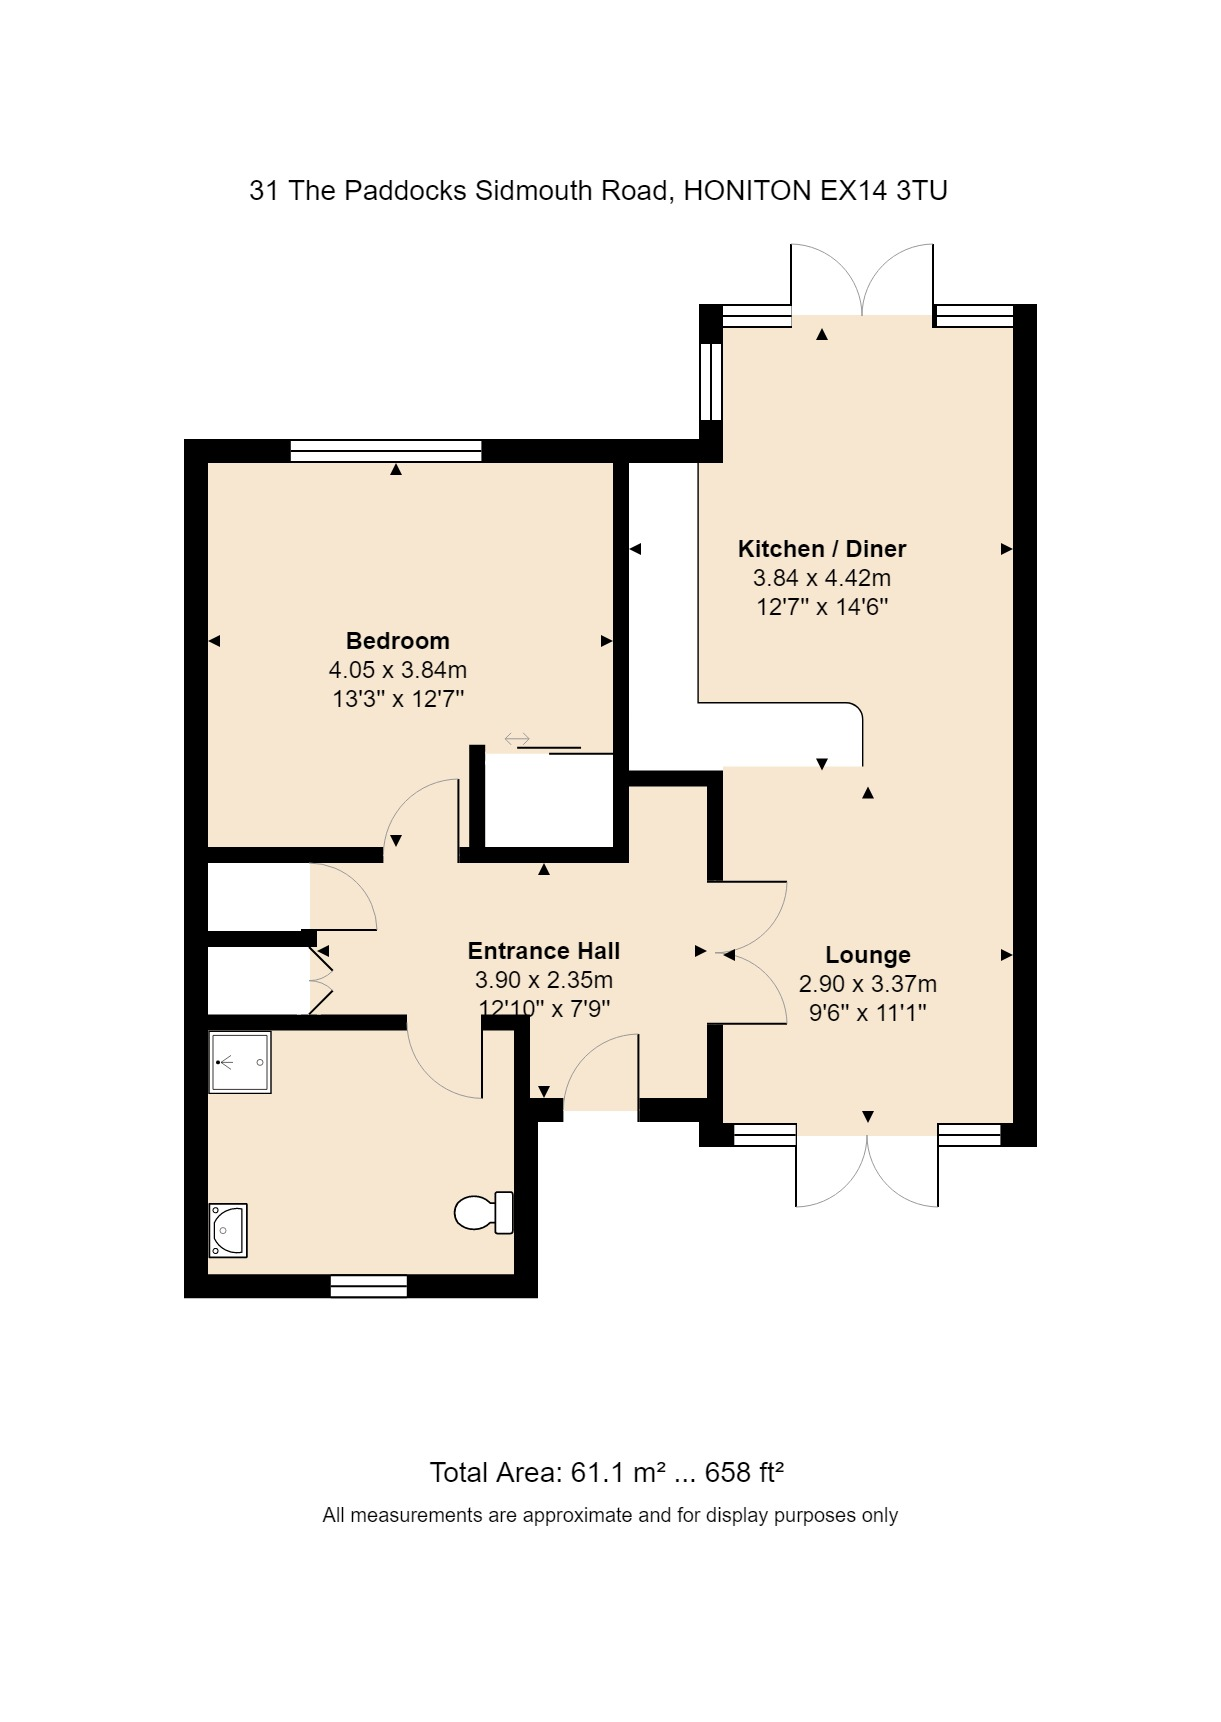 31 The Paddocks Floorplan